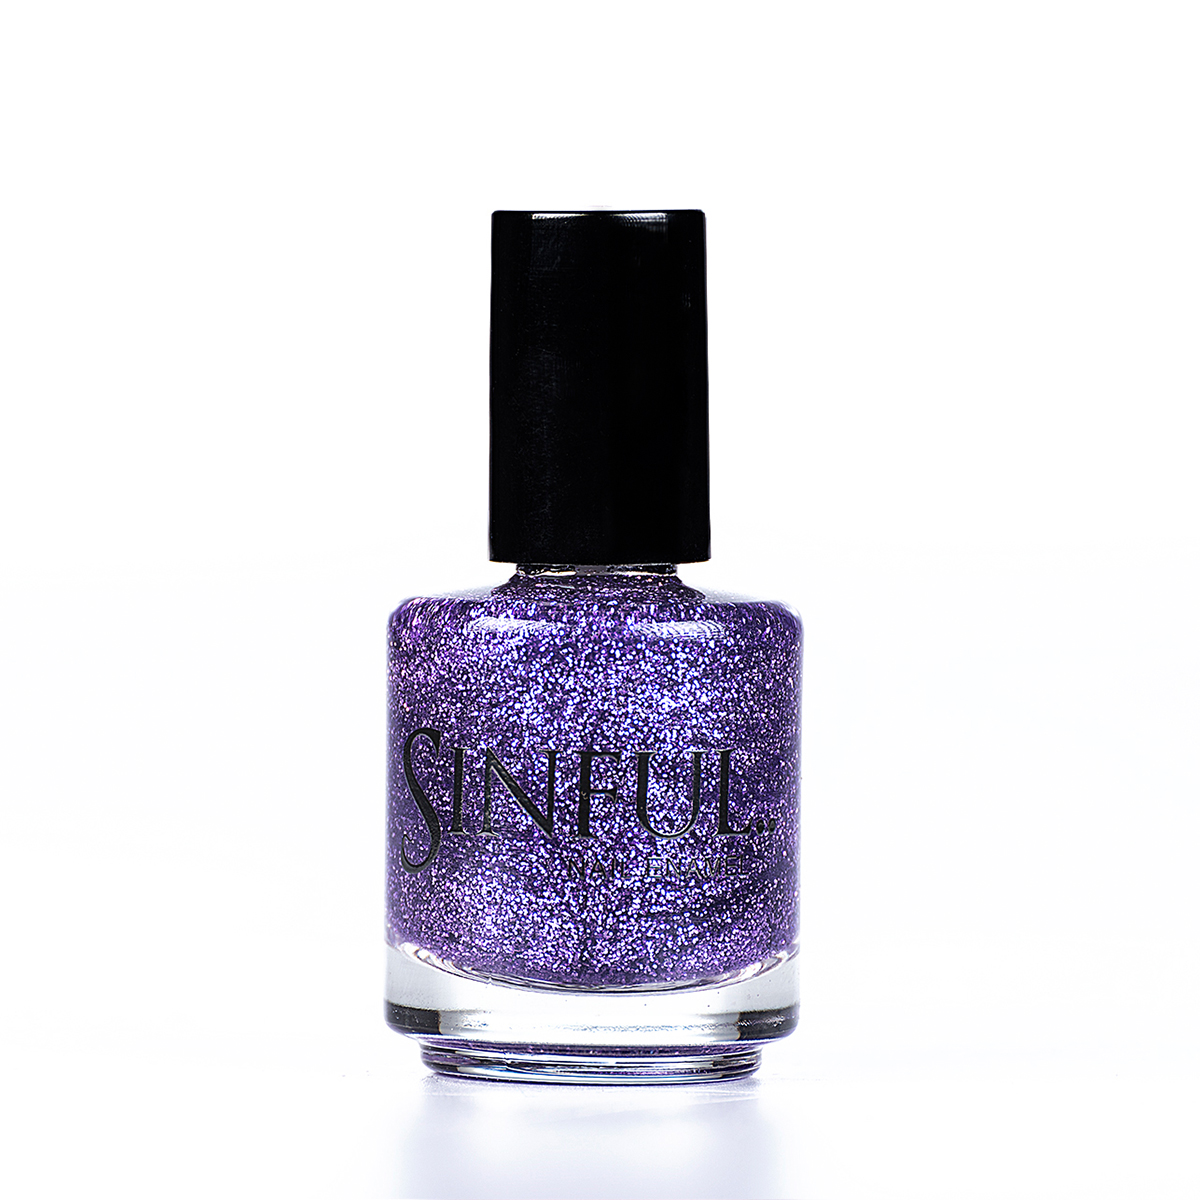 Lilac purple glitter that doesn't cause Chaos. Can be applied over a undercoat to give a quick, dazzling effect. For a super full nail glitter effect, apply 2-3 layers with a top coat. 15ml